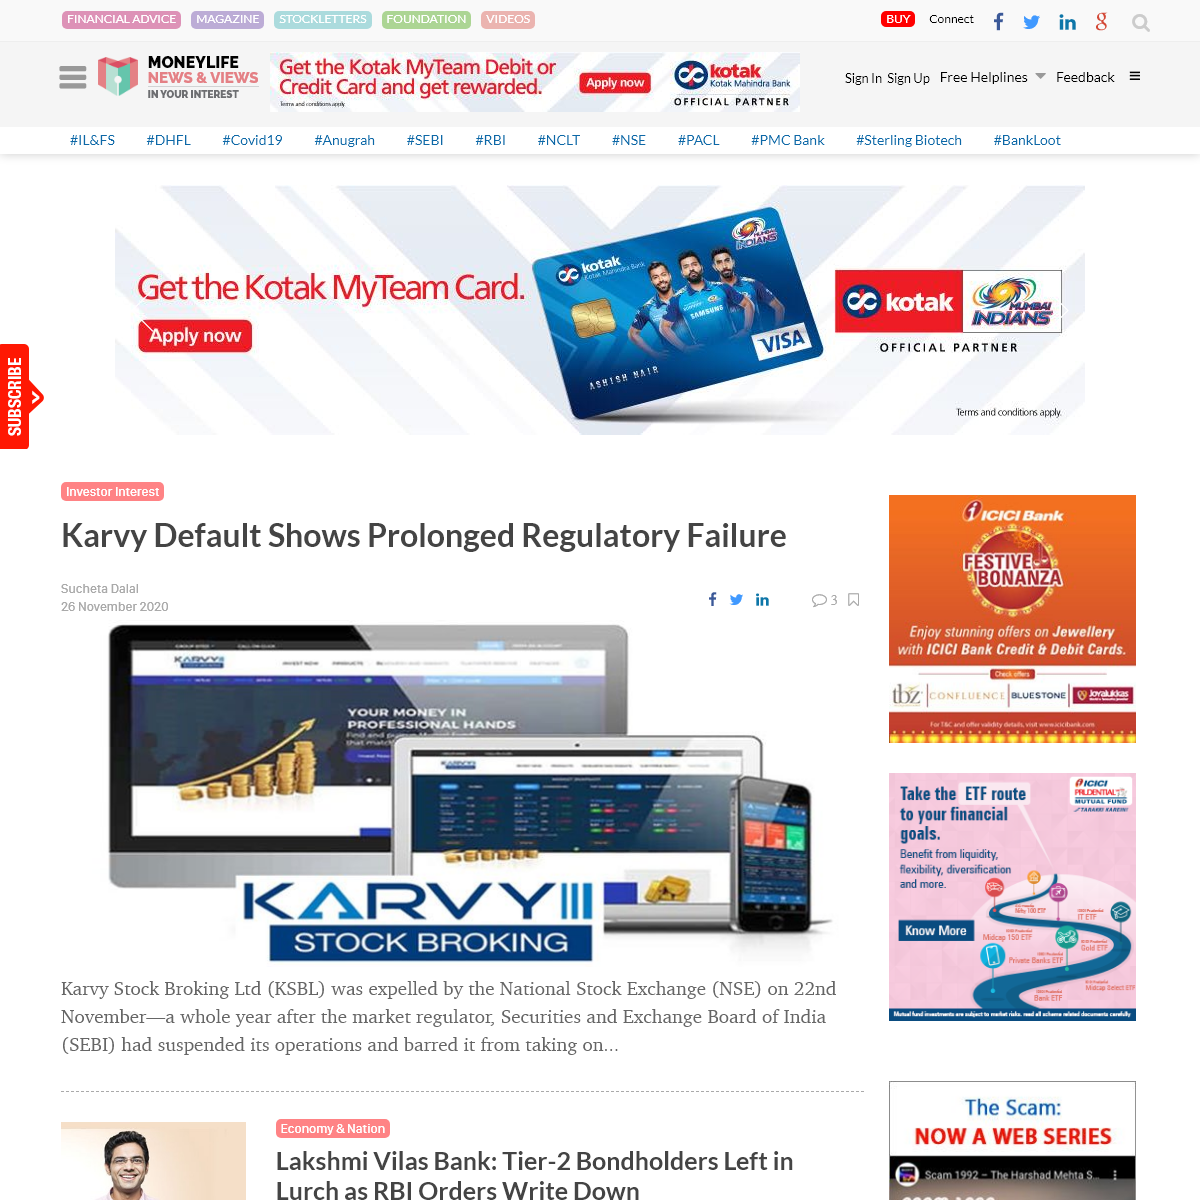 Moneylife India - Financial Magazines online in India